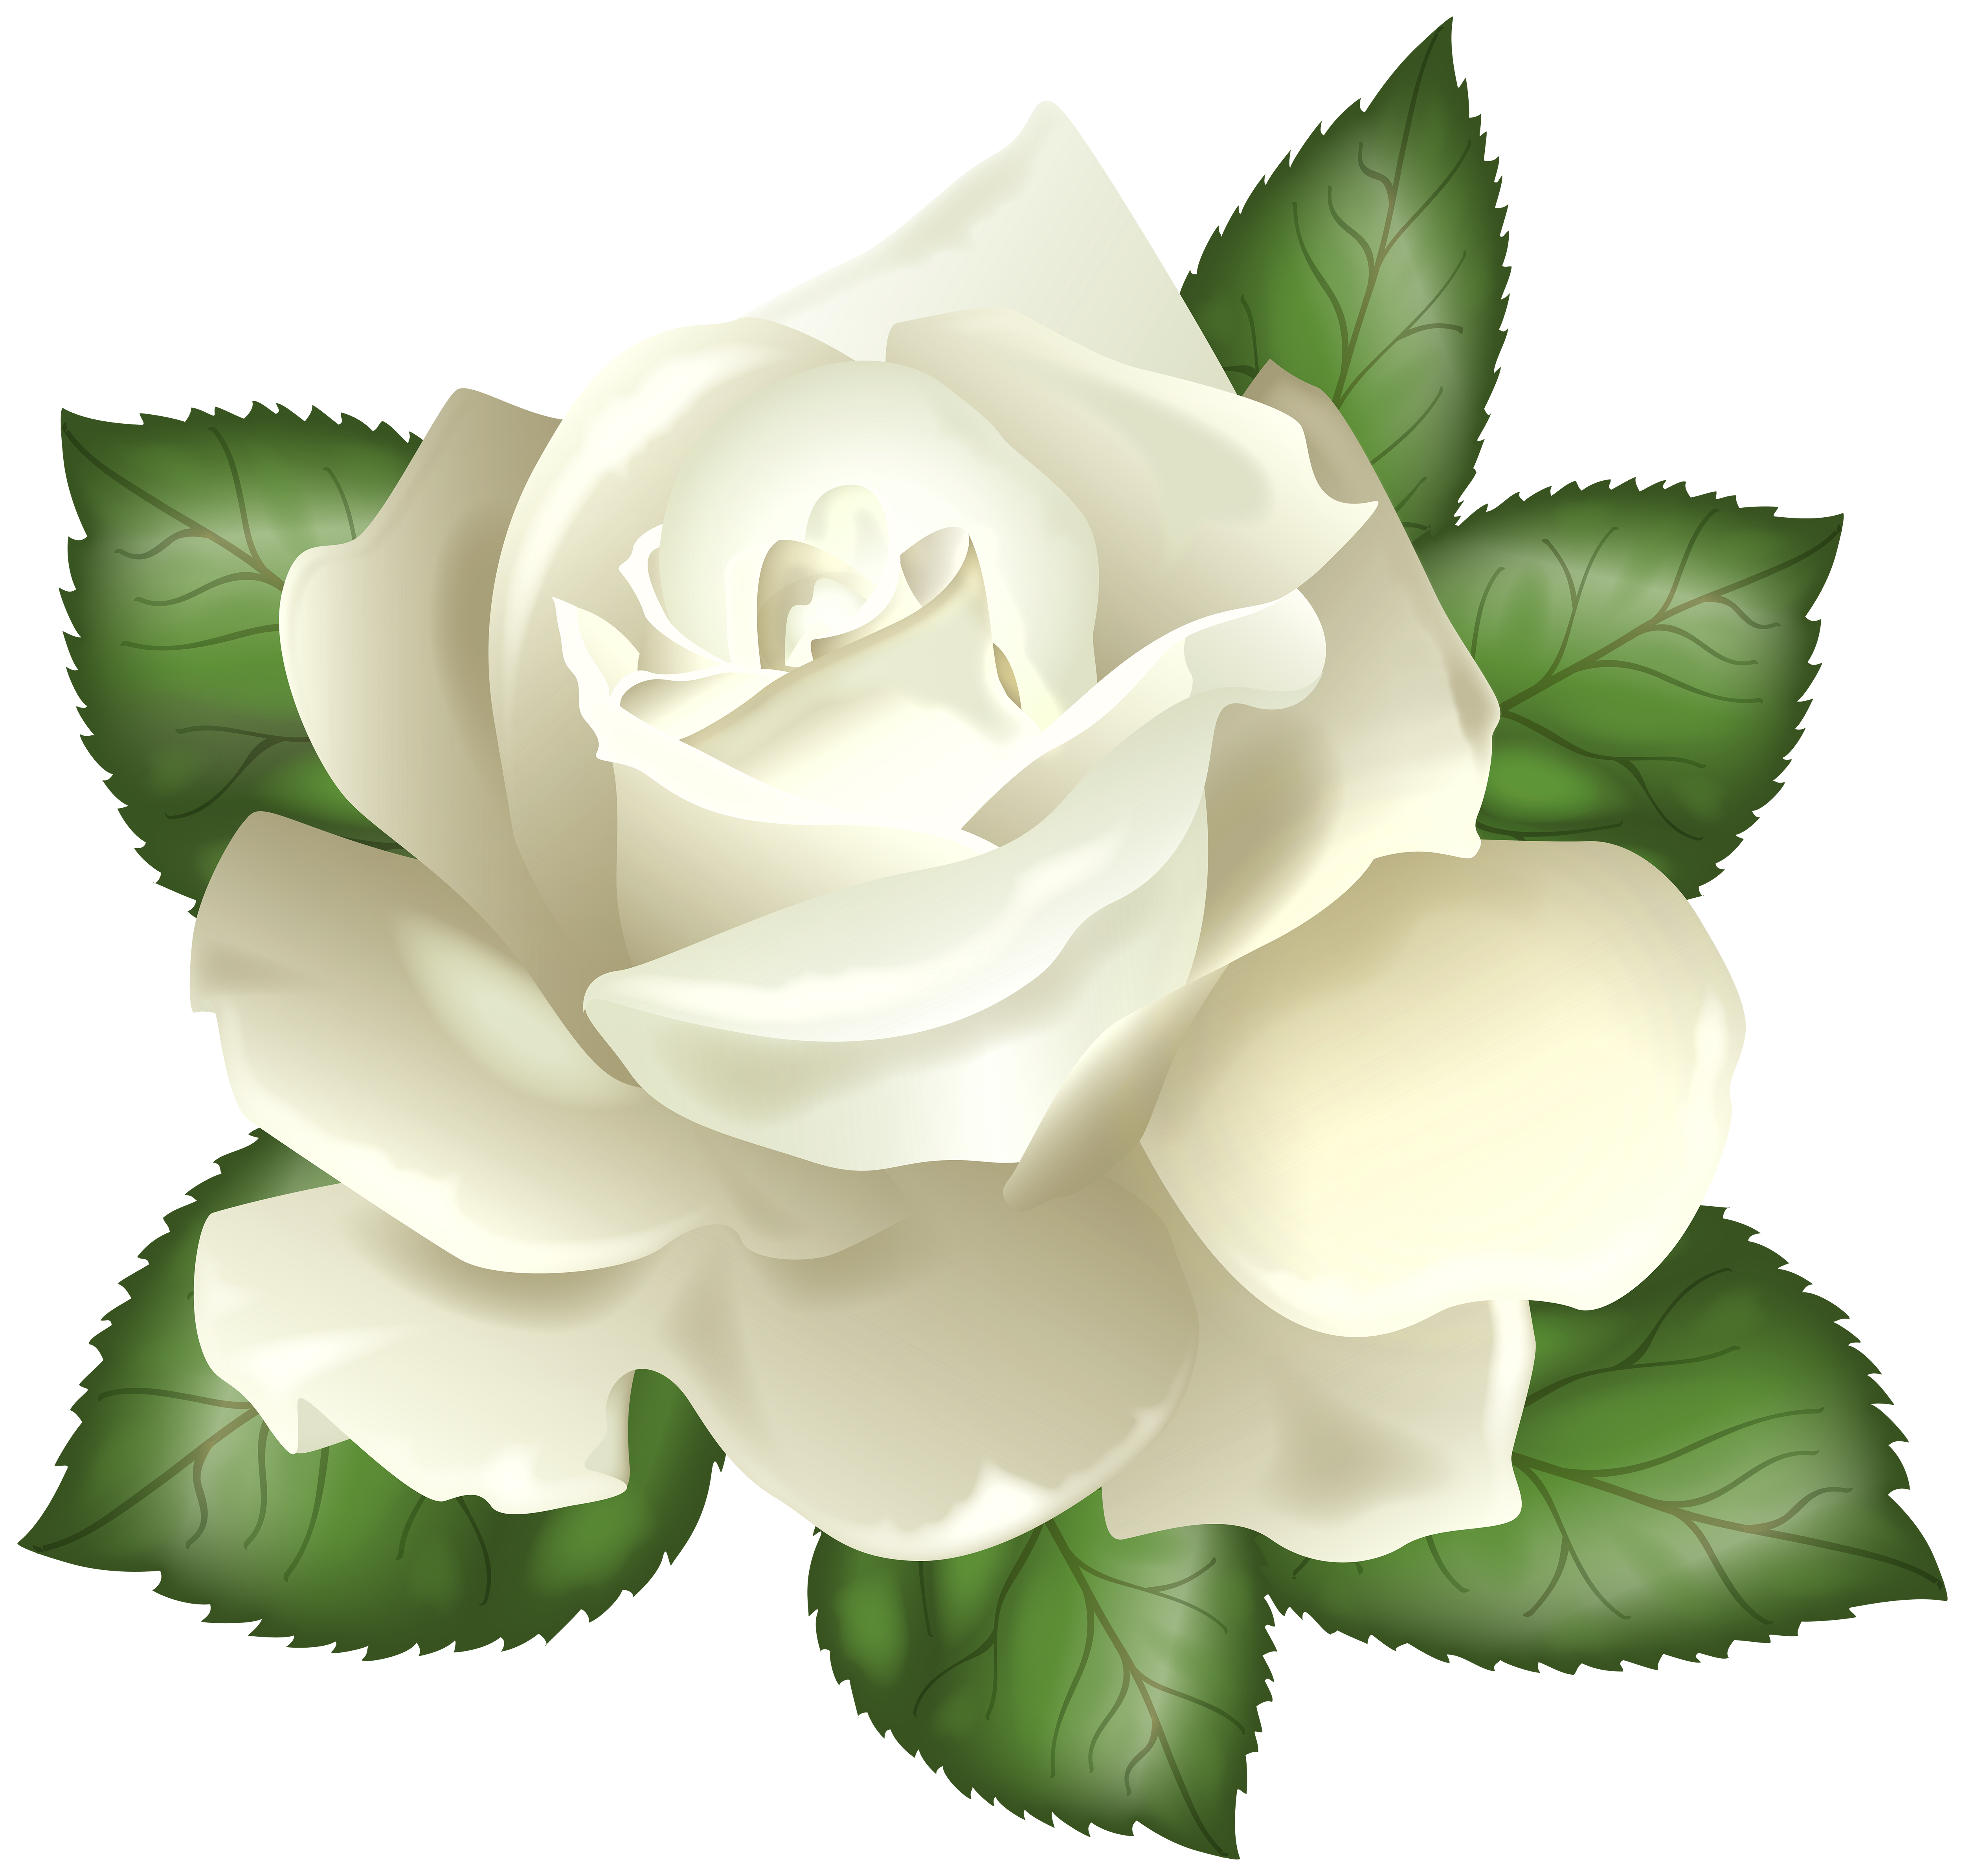 White_Rose_Transparent_PNG_Clip_Art_Picture.png (5000×4773